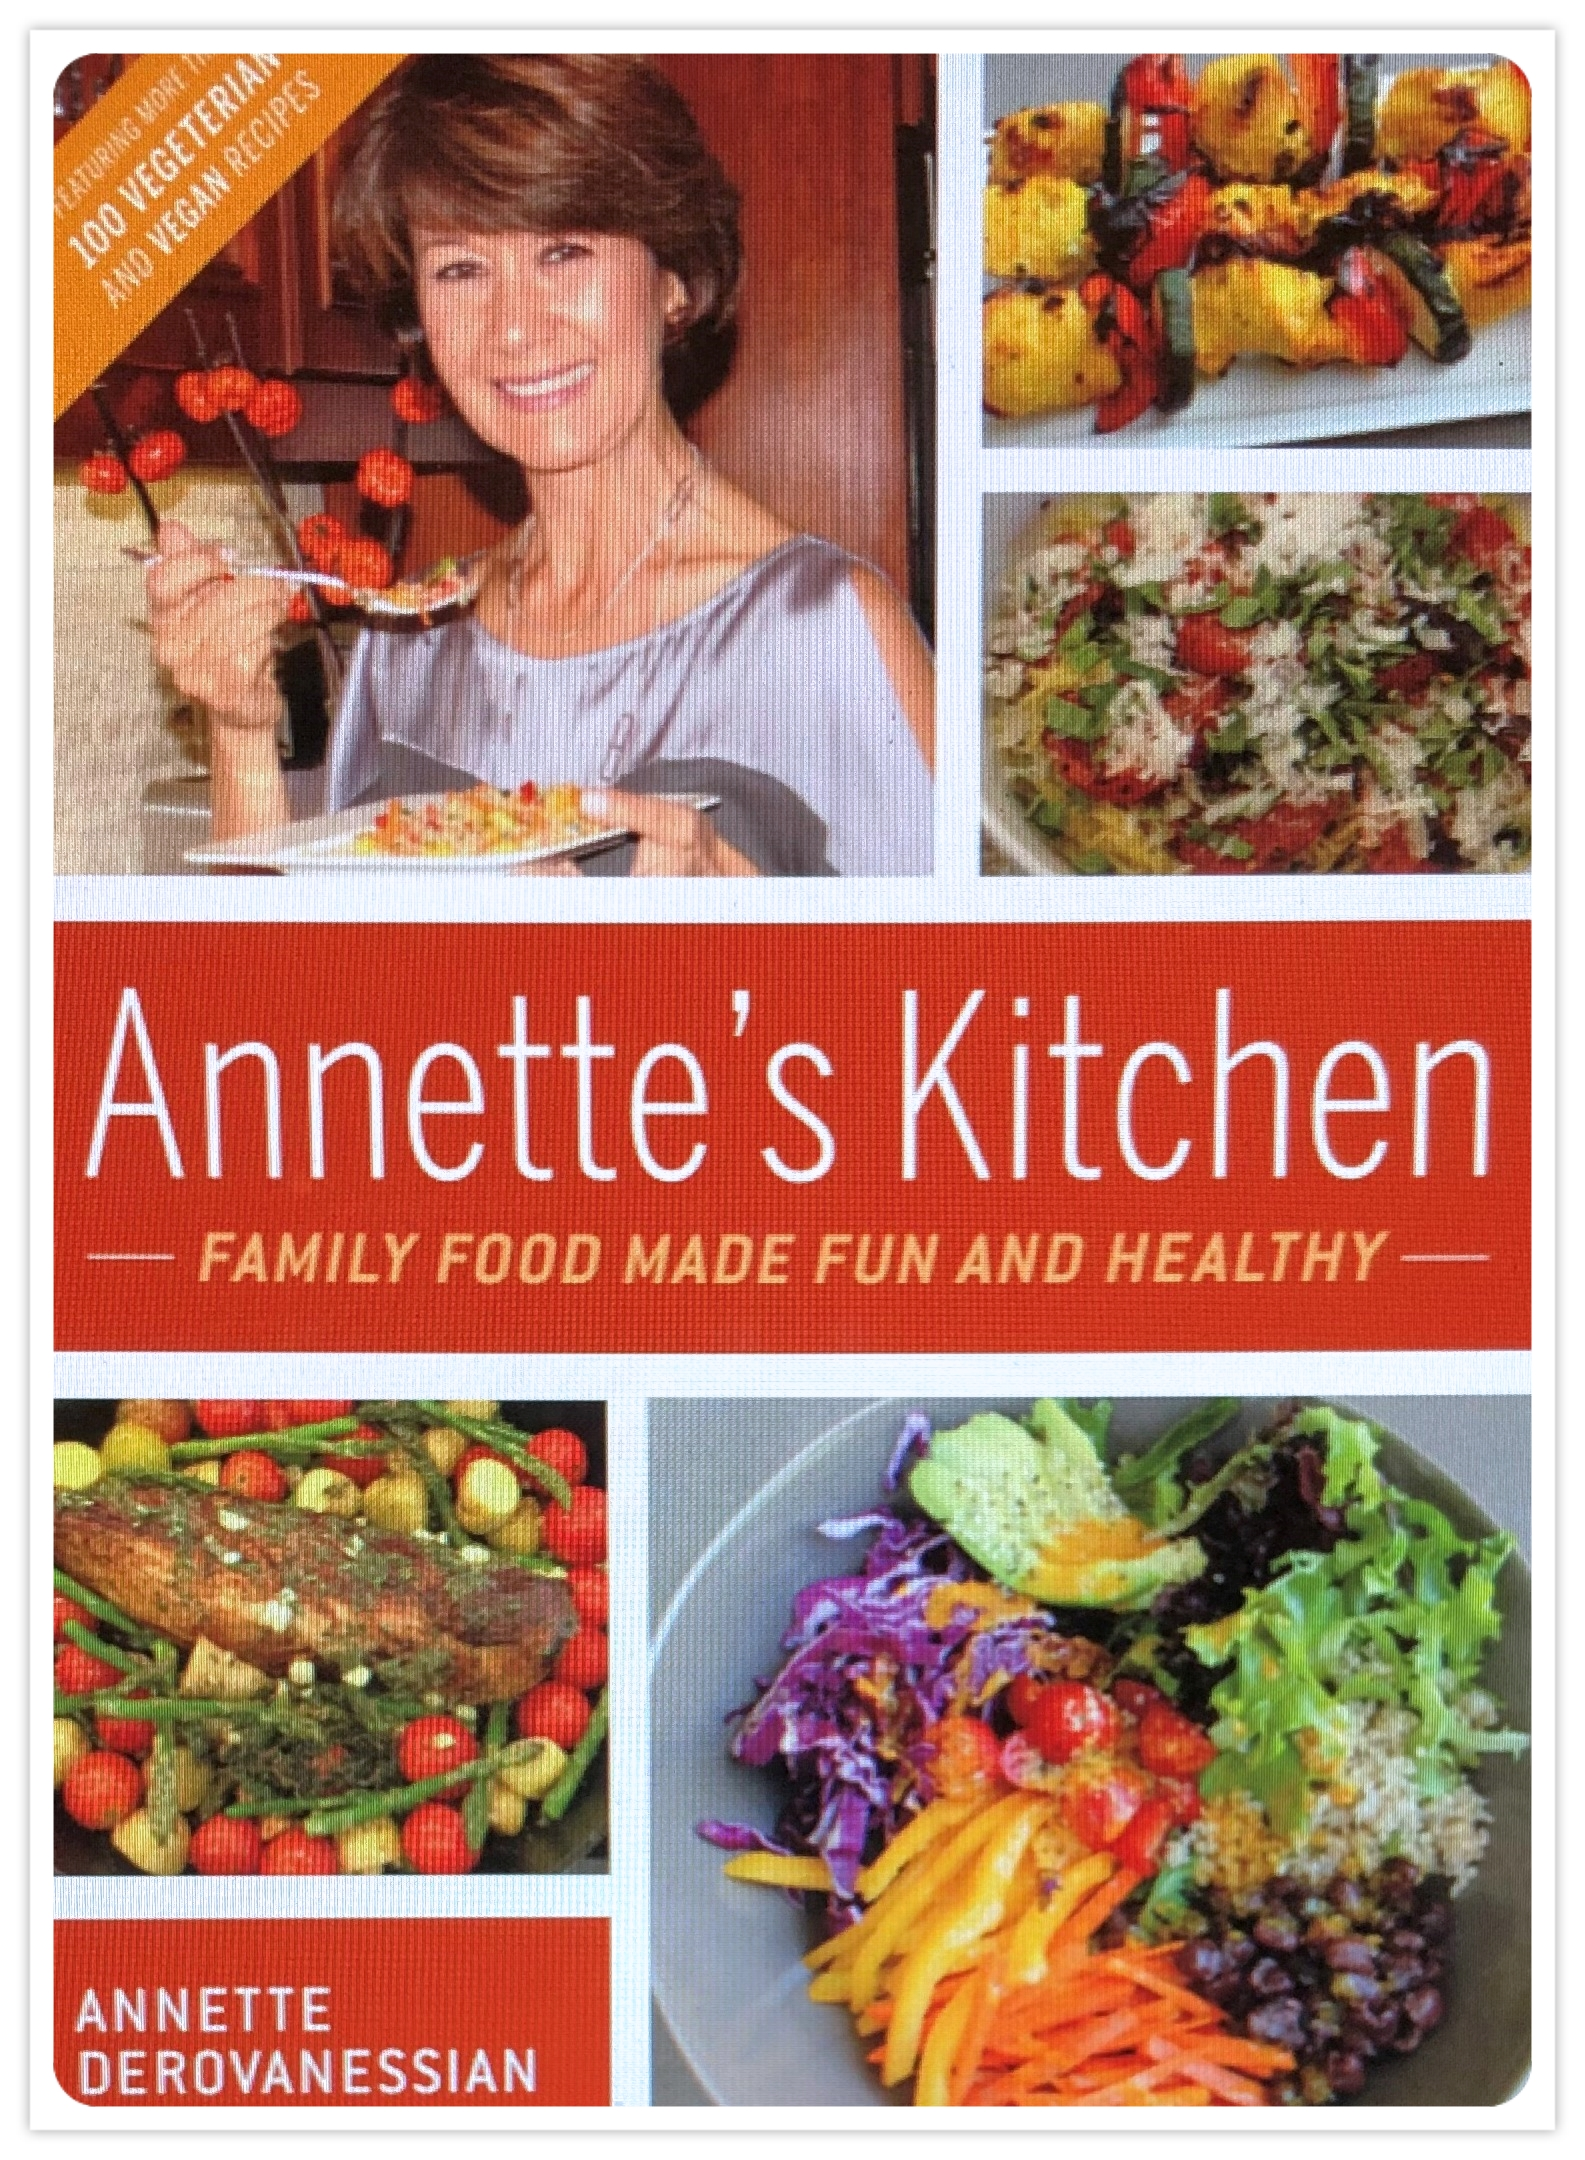 The Book - Looking for healthy and delicious recipes? Check out my cookbook!Read More…